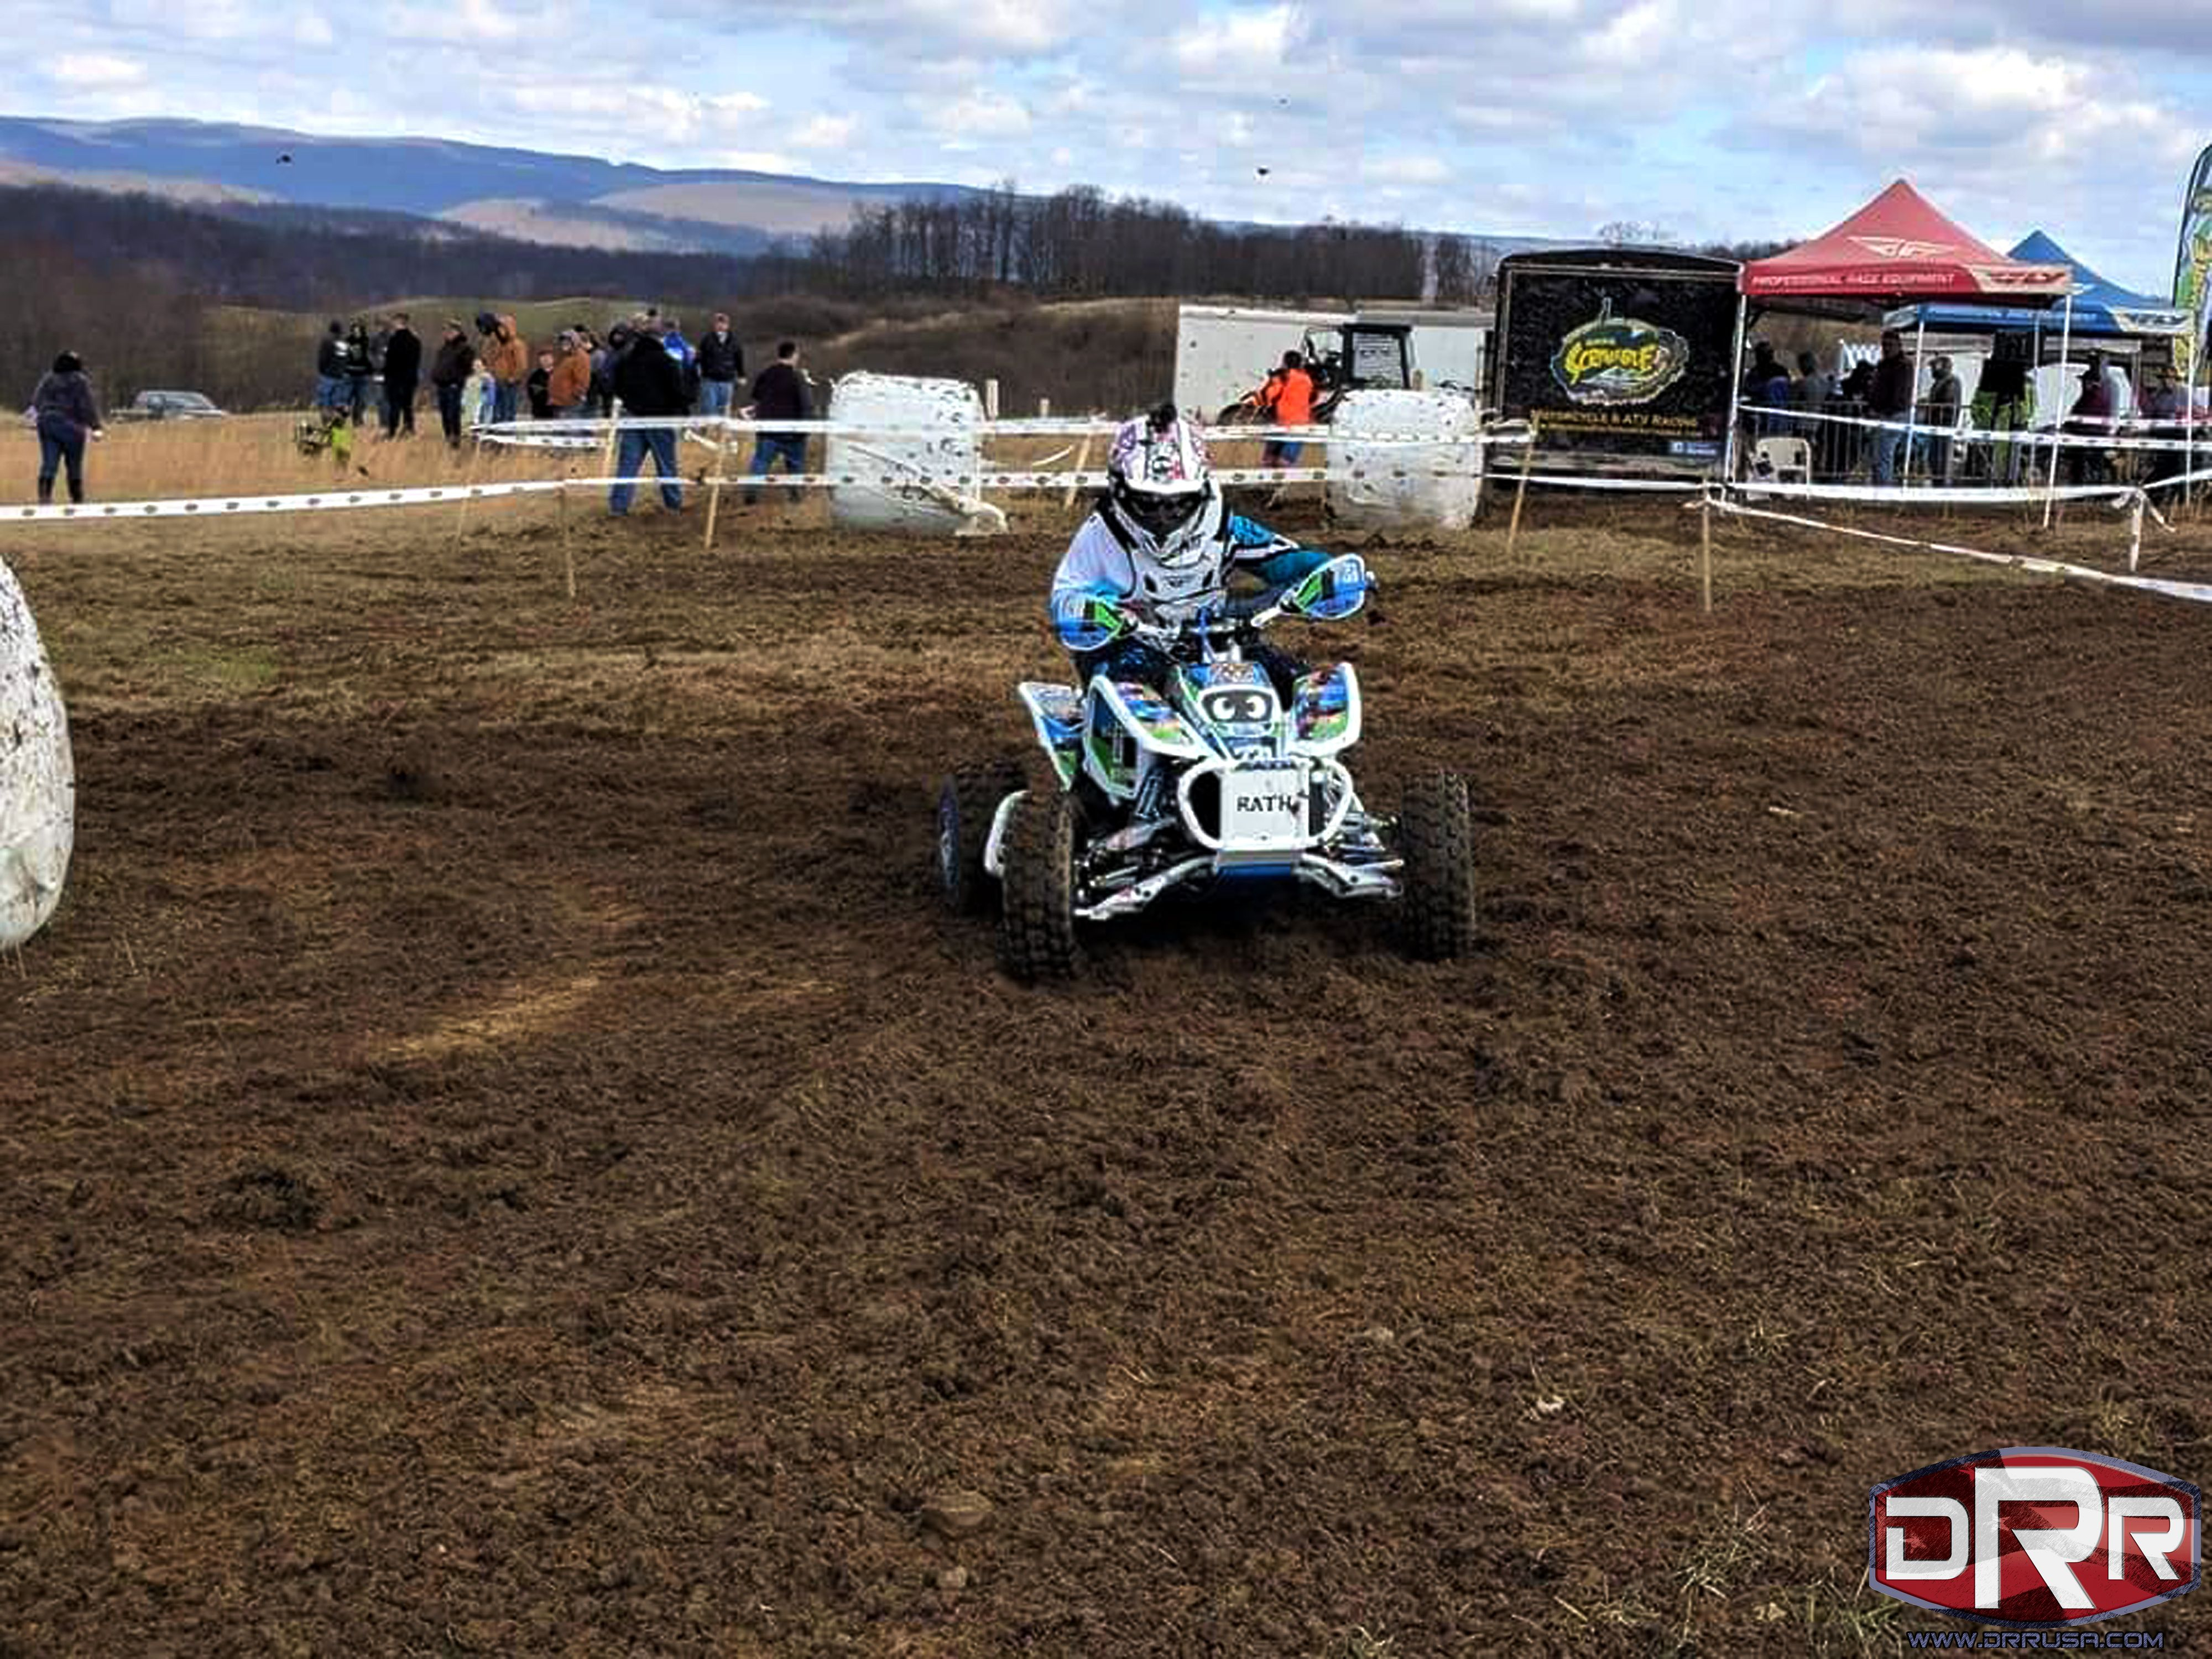 emily hanlin at the mountain state harescramble on 3 31 18 riding her drr drx 90cc atv  [ 4000 x 3000 Pixel ]